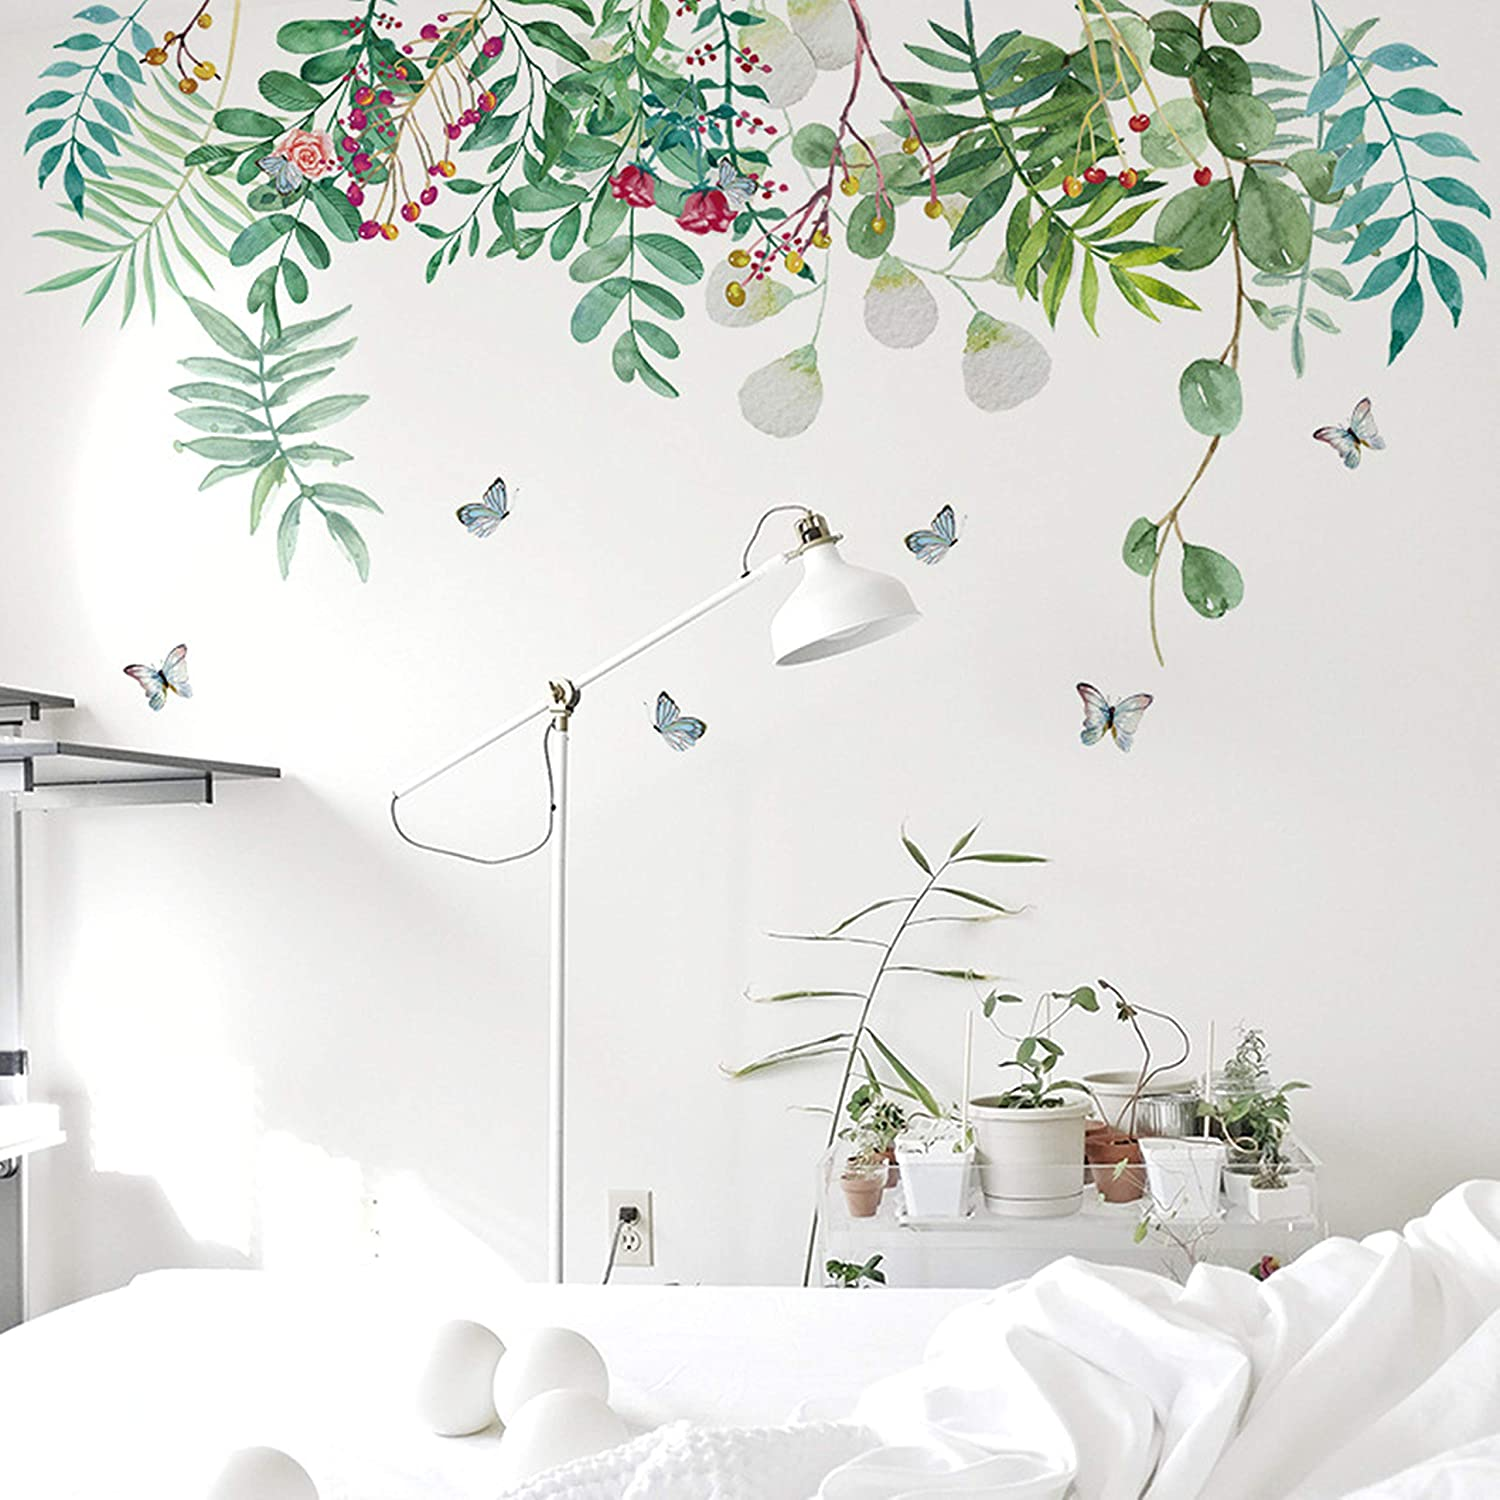 Rofarso Nature Green Plants Fresh Leaves Vinyl Wall Stickers Removable Pvc Wall Decals Art Picture Decorations Decor For Nursery Baby Boys Girls Bedroom Playroom Living Room Murals Kids Furniture Décor Storage